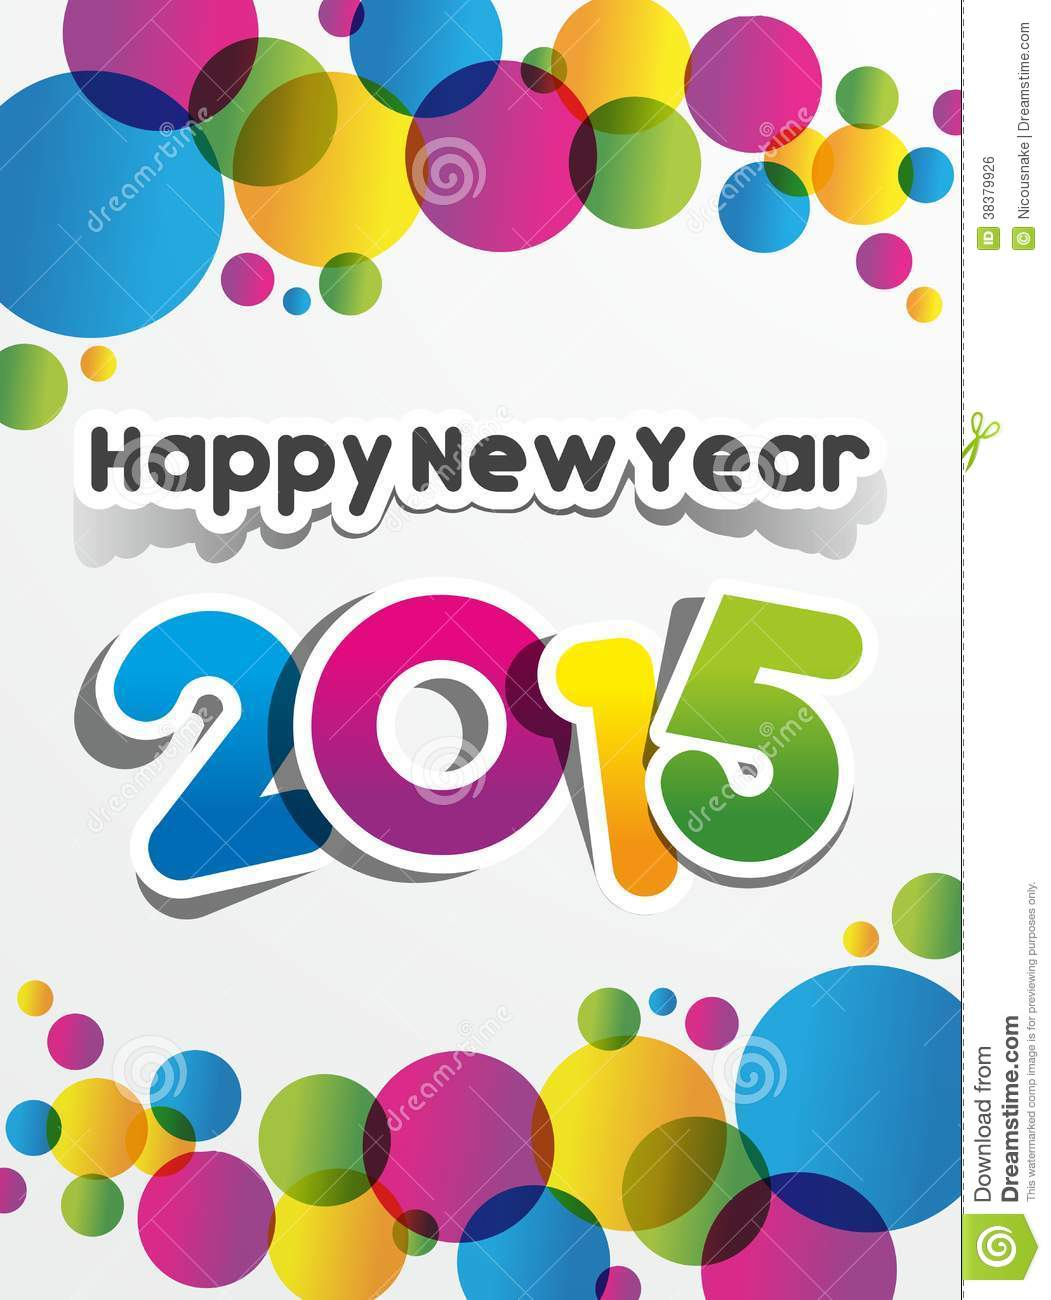 Happy New Year 2015 Greeting Card Stock Vector - Illustration of ...